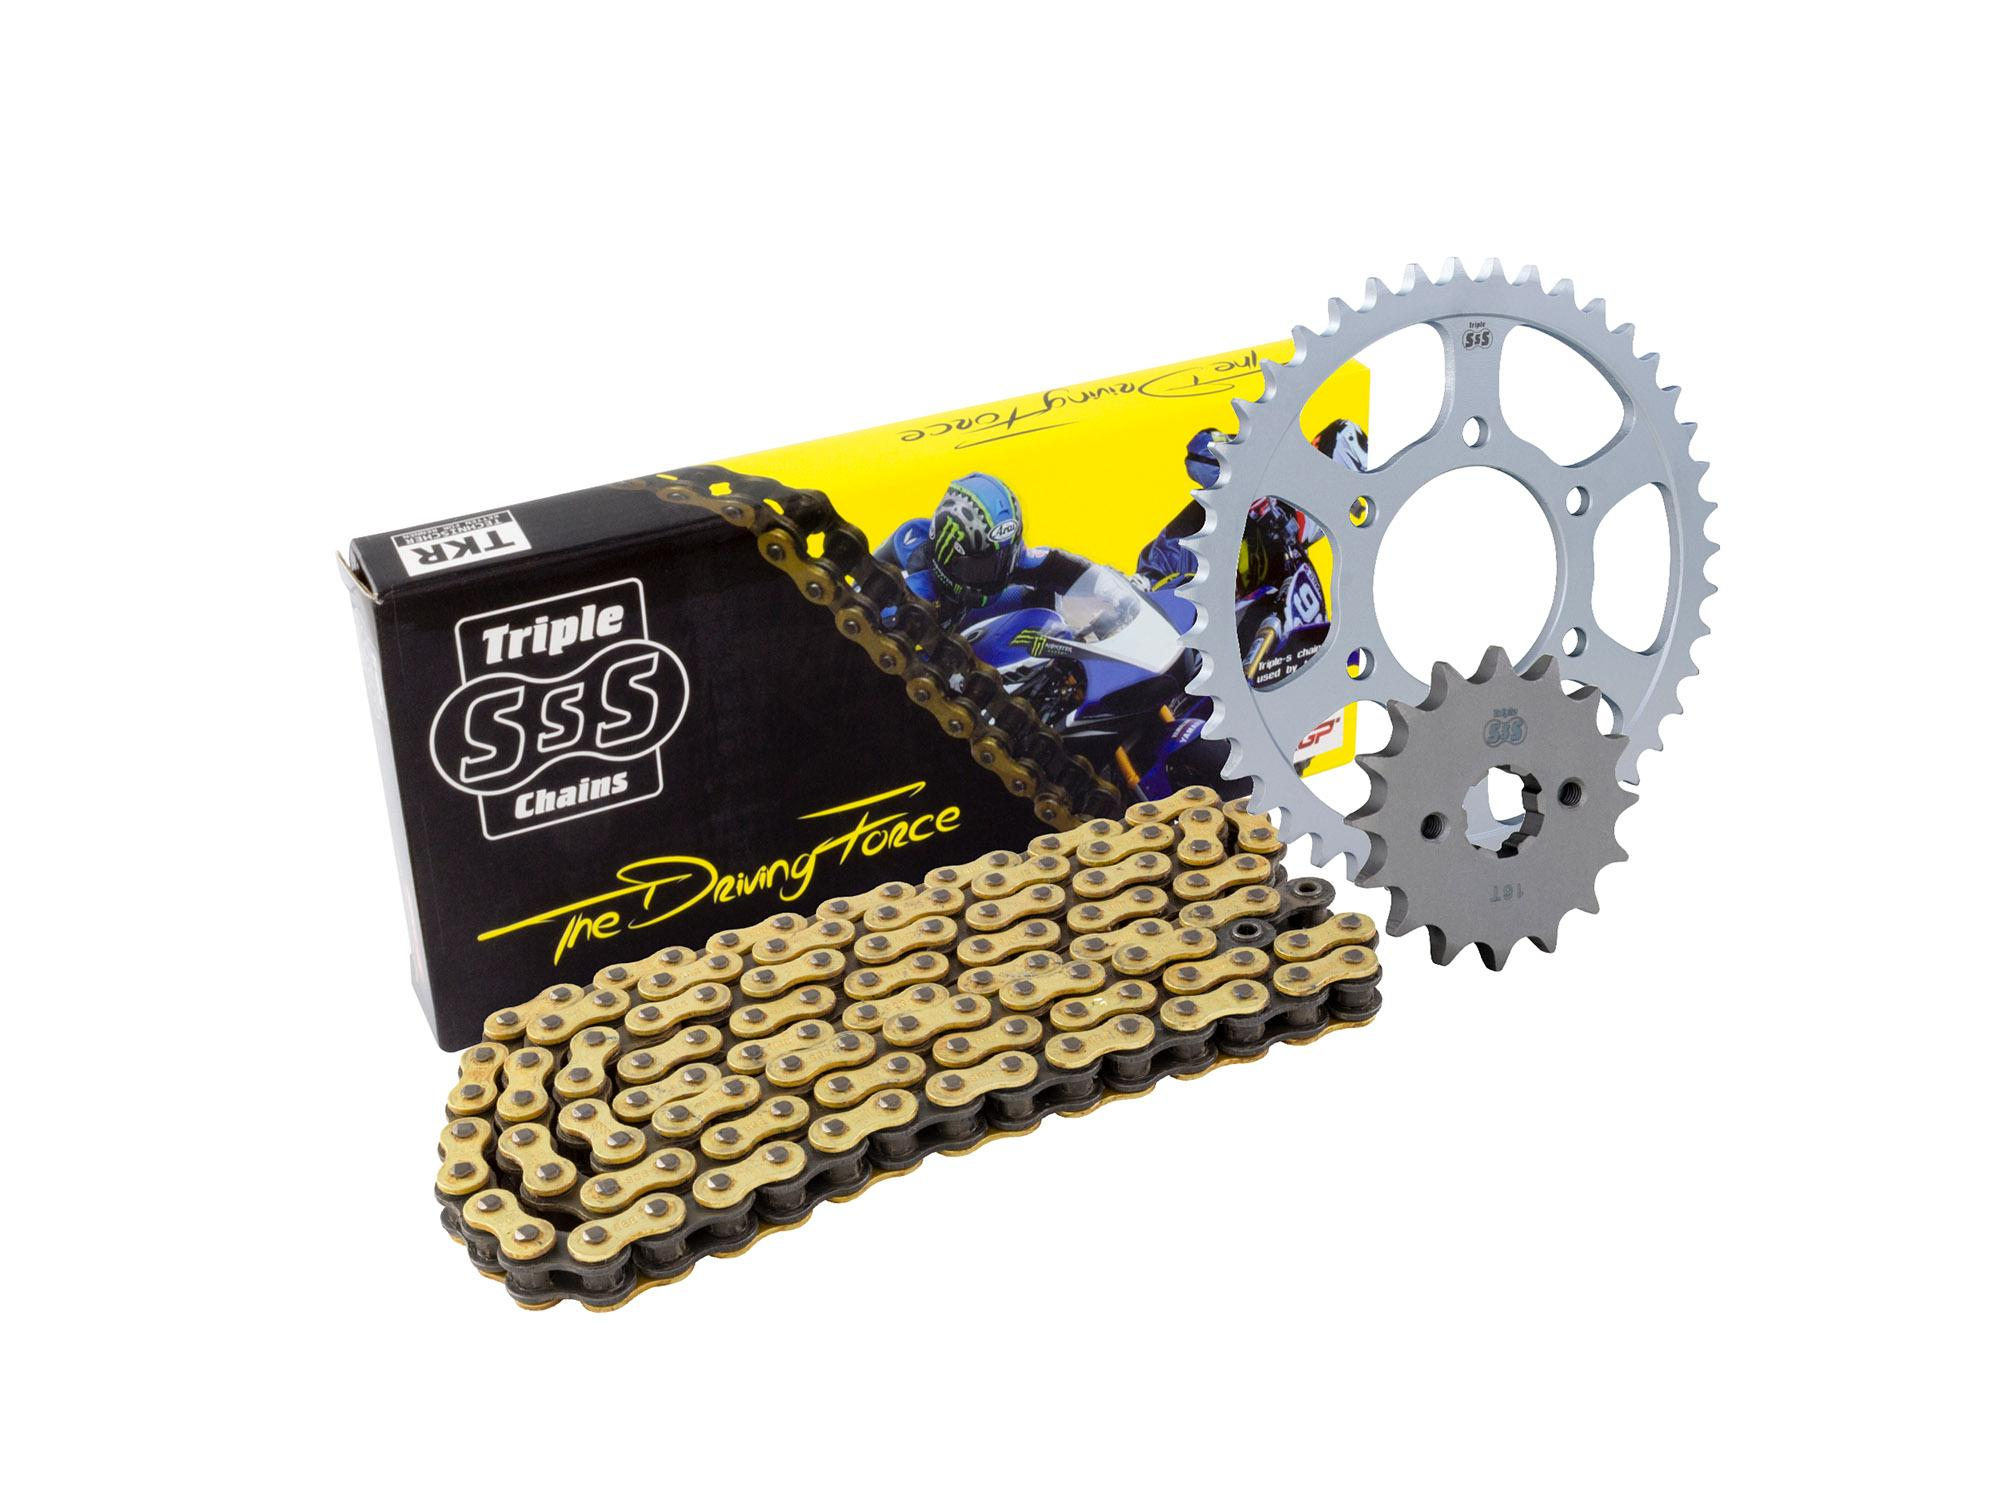 Yamaha YZF R1 09-10 Chain & Sprocket Kit: 17T Front, 47T Rear, HD O-Ring Gold Chain 530H 120 Link